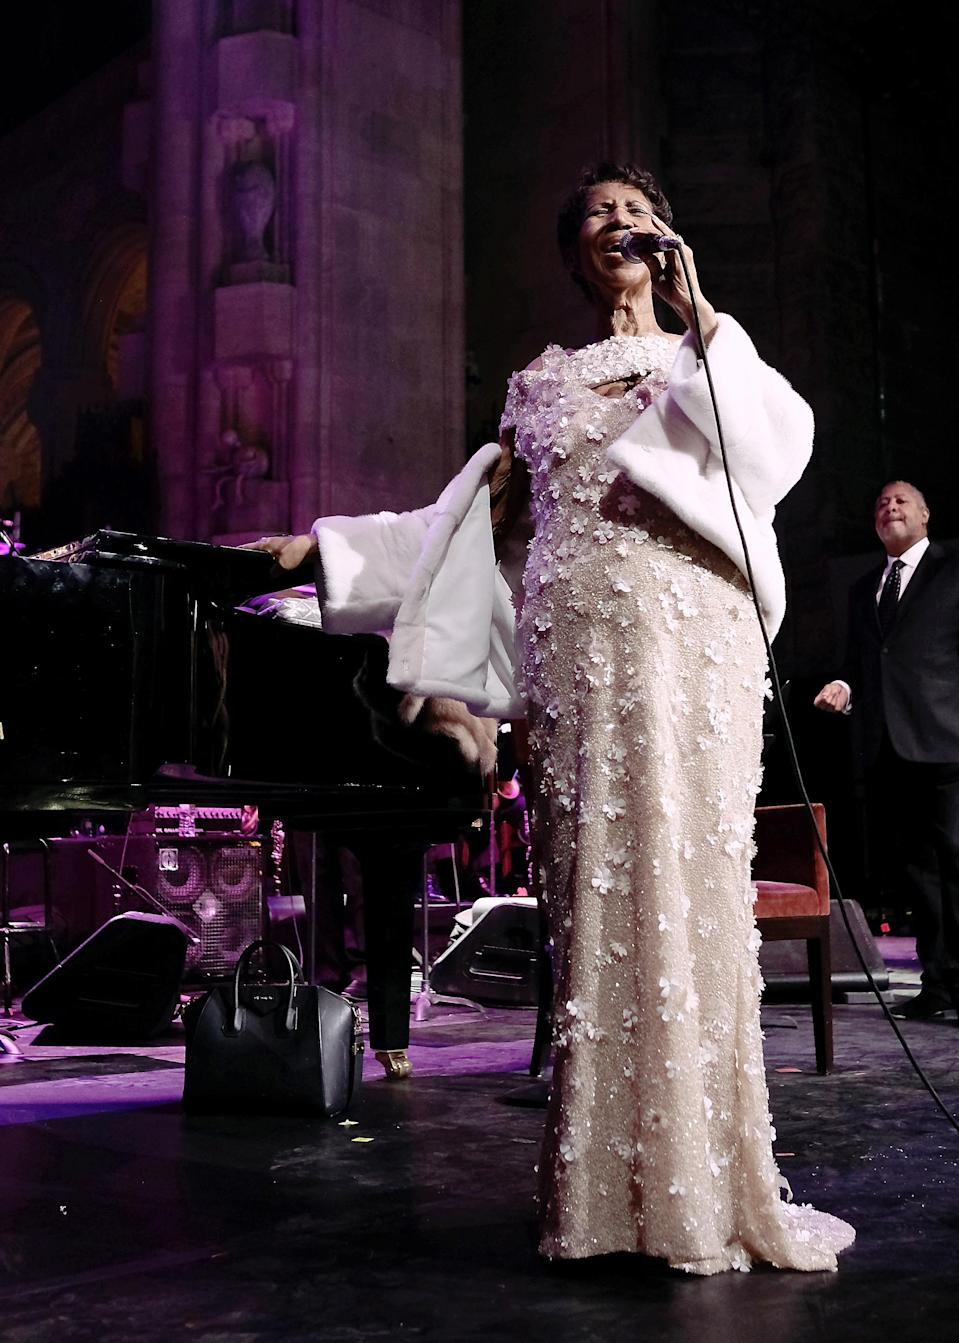 <p>At 75, Aretha Franklin was still going strong wearing a luxurious cream sequin gown decorated with floral appliqués and a white fur coat while performing at the Elton John AIDS Foundation Gala in New York City. (Photo: Getty Images) </p>